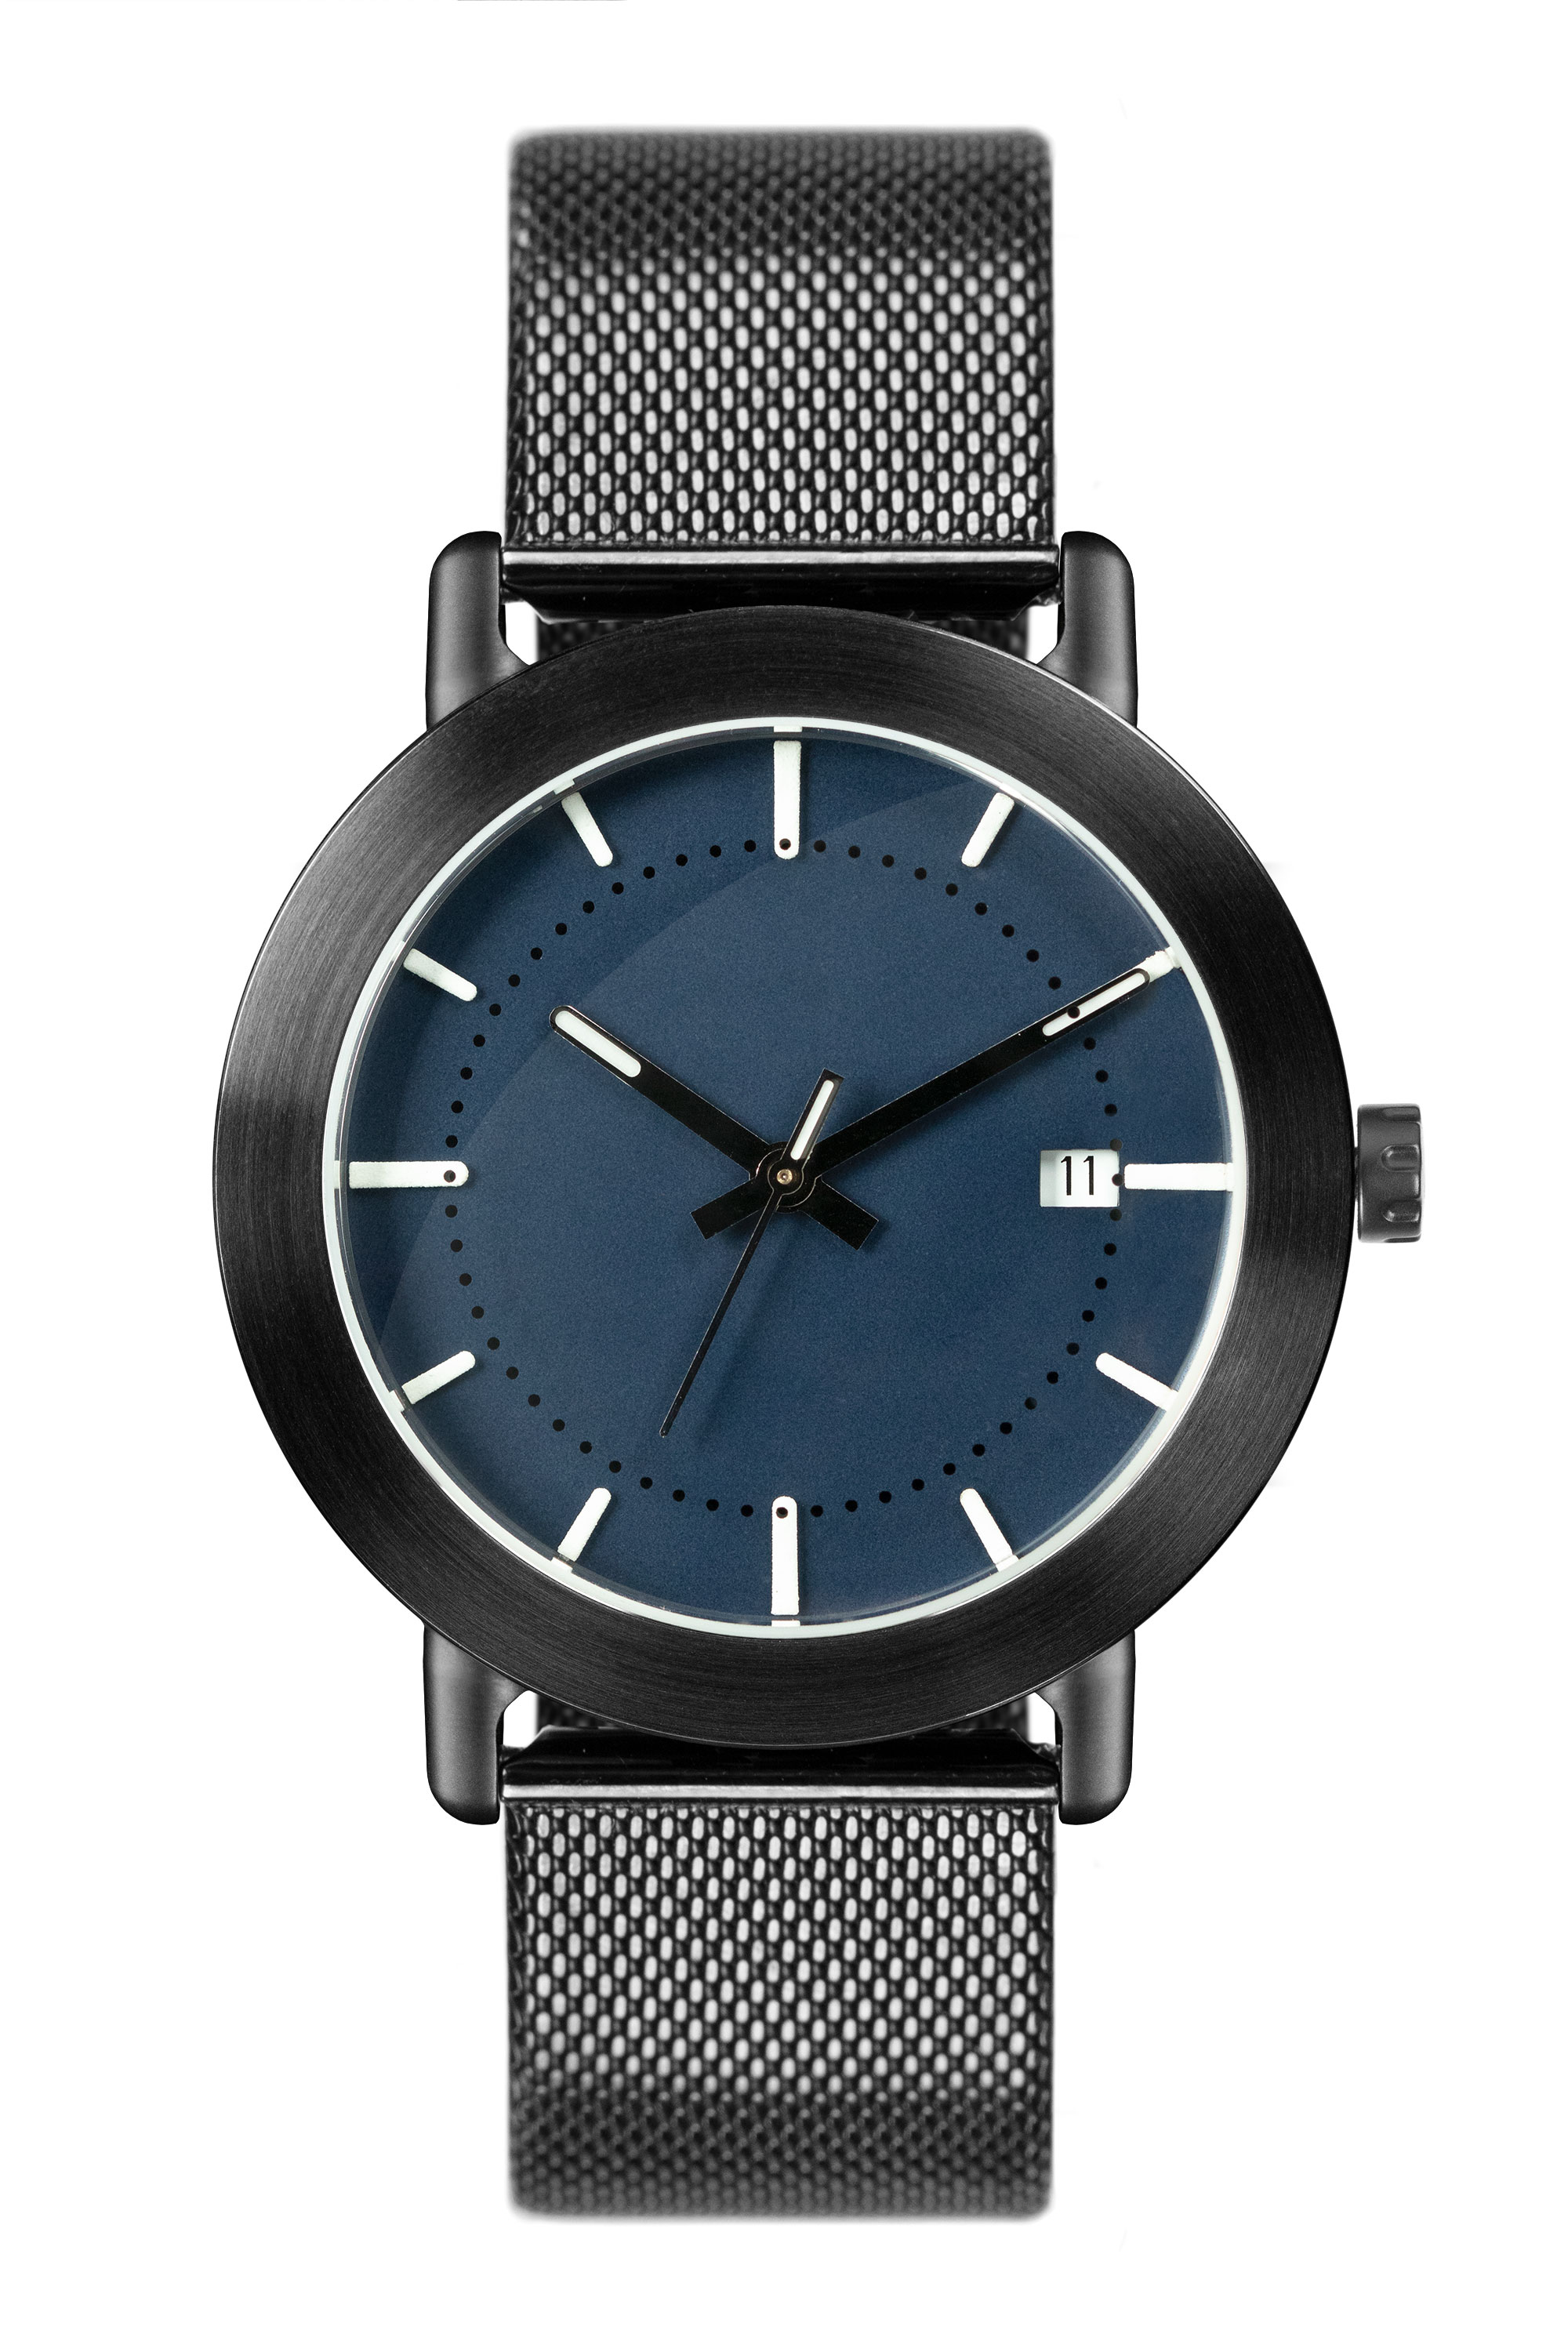 Eleven - Is the result of the challenge to create an elegant dress watch with an automatic movement.For € 725,-